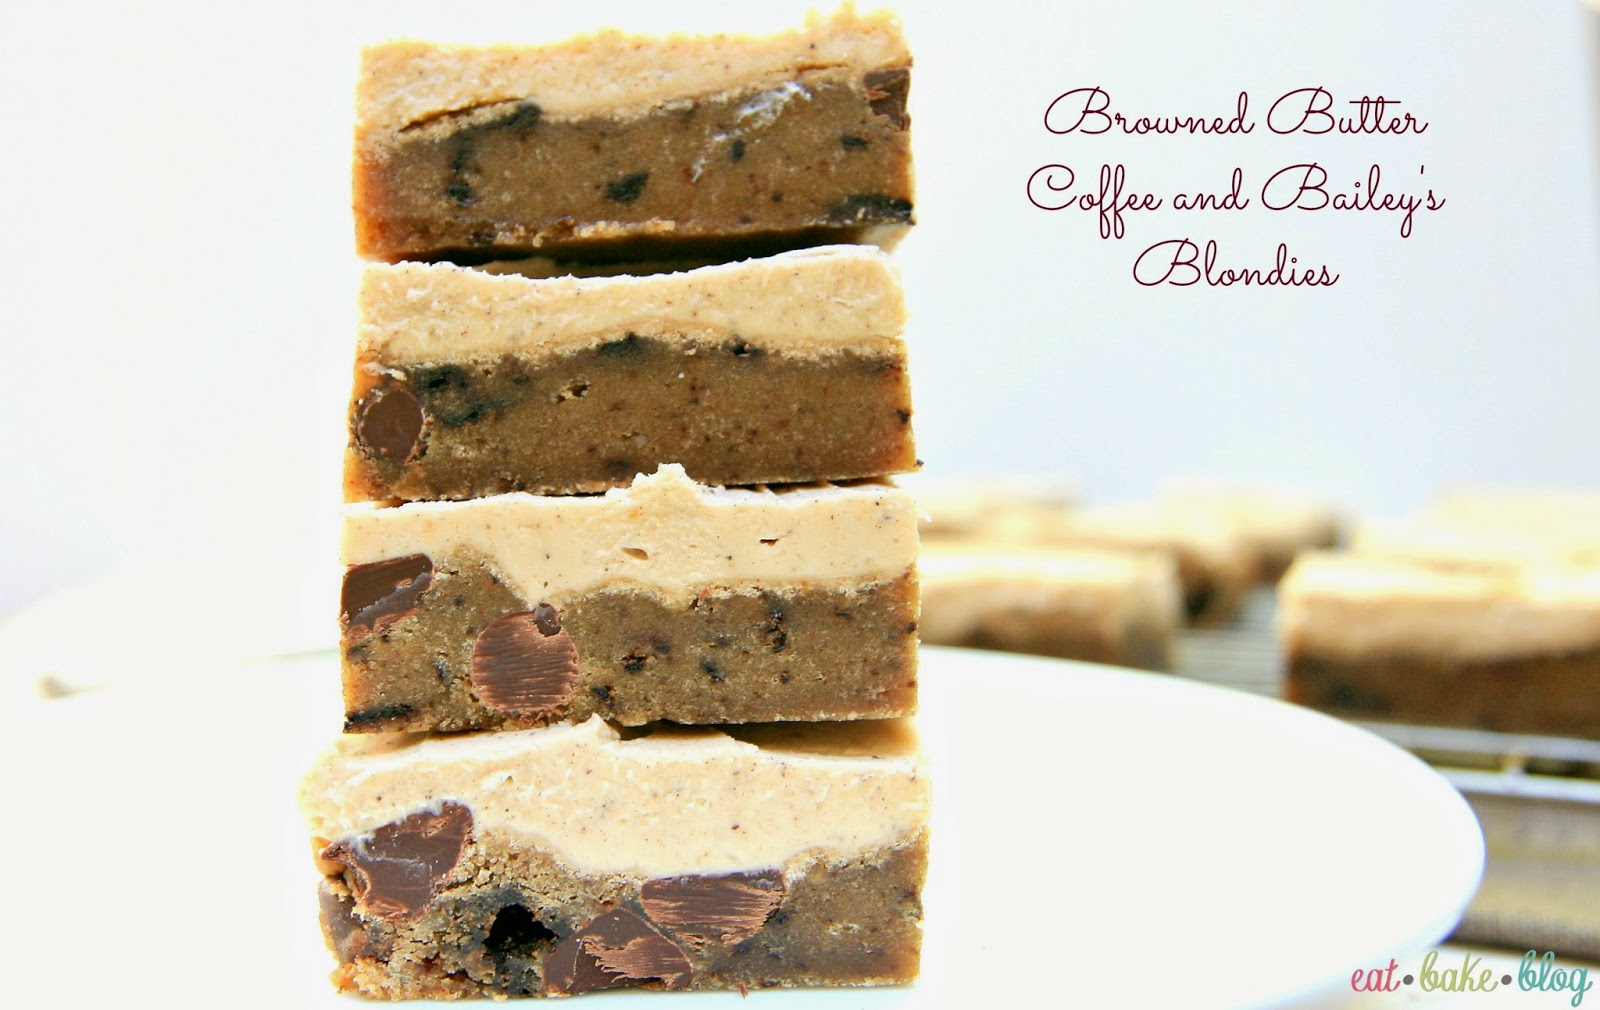 best blondies recipe chocolate chip cookie bars browned butter blondies recipe st. patrick's day dessert recipe